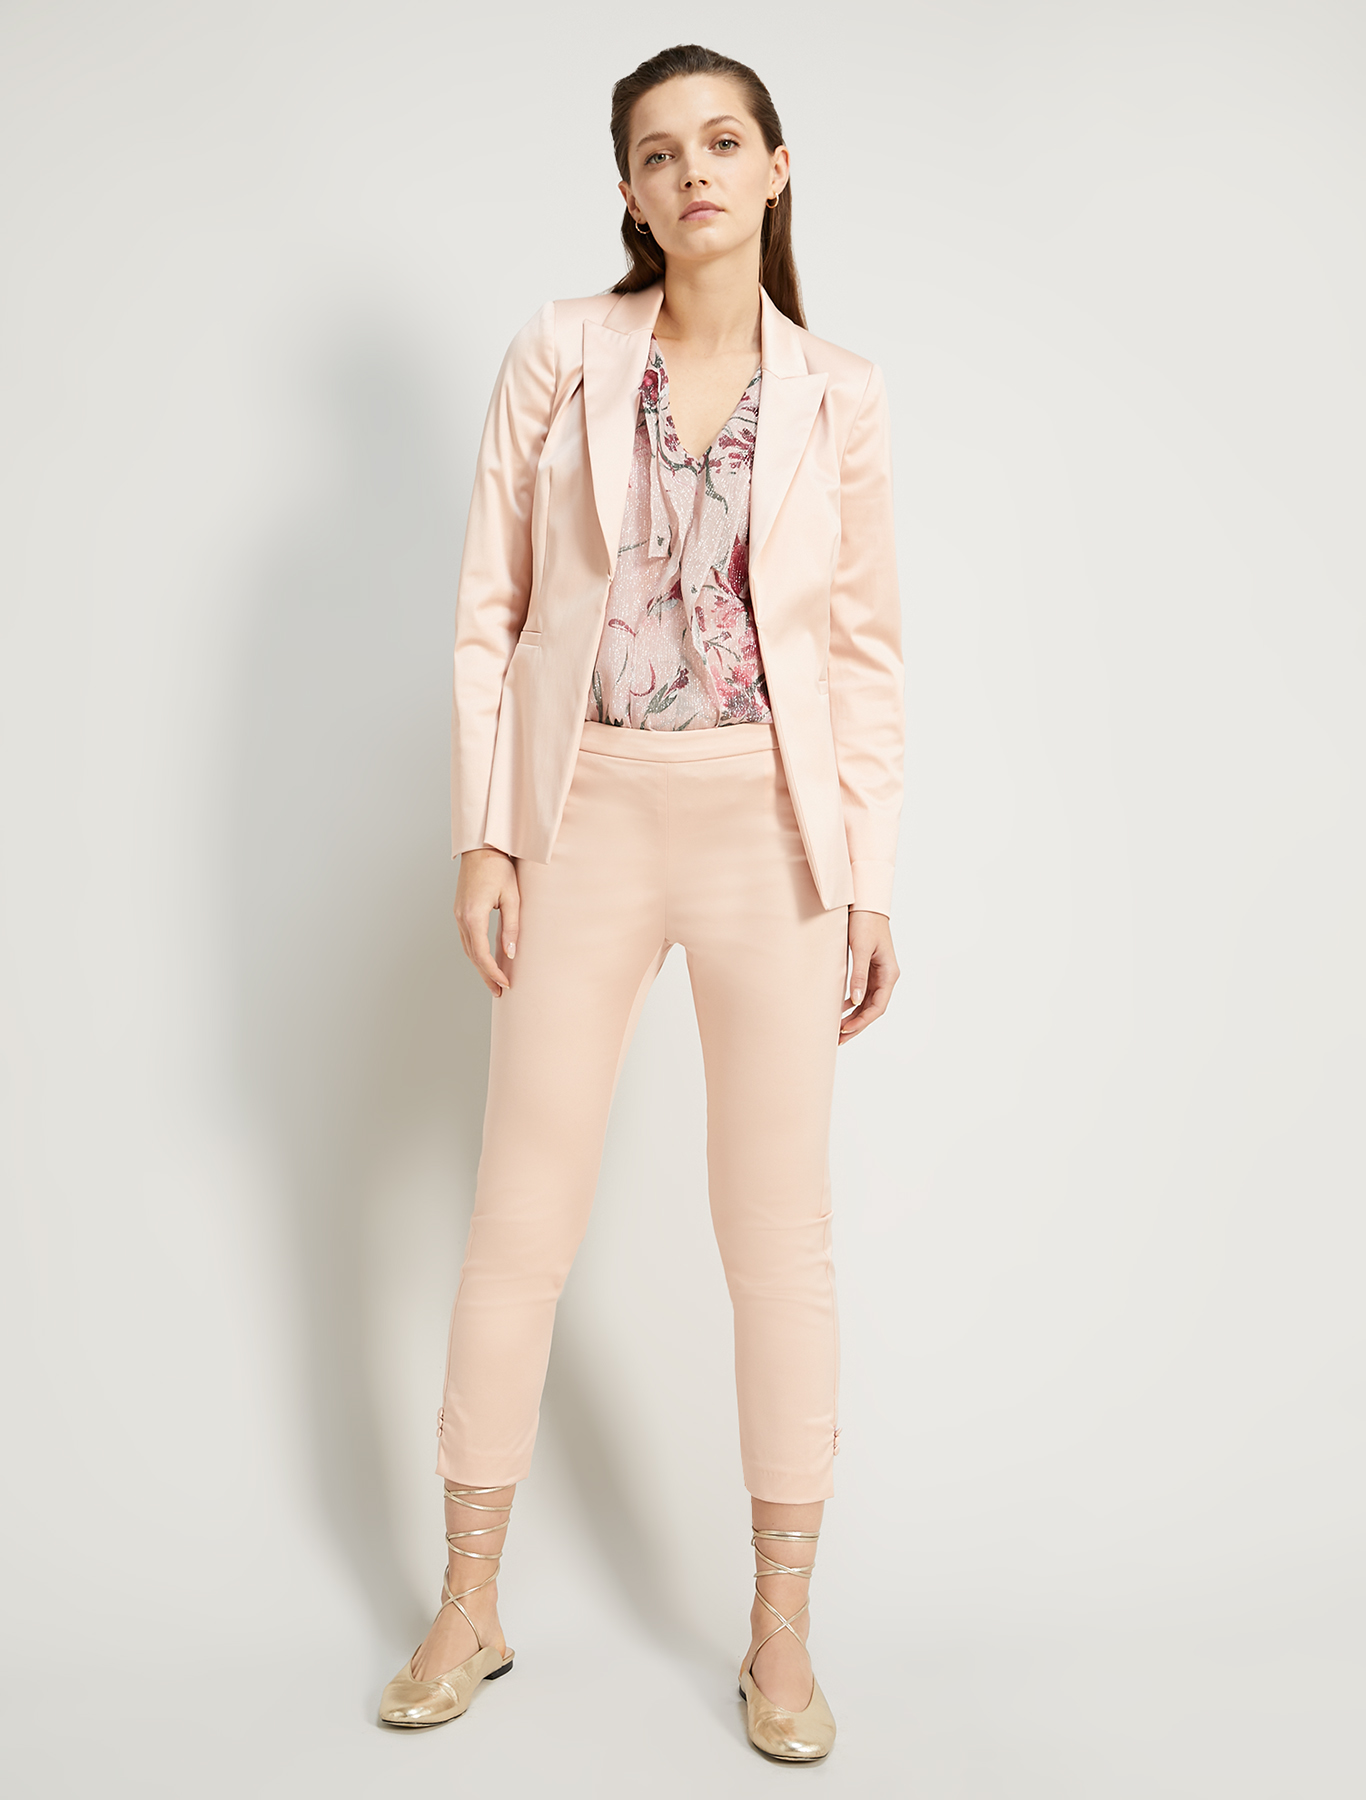 Lamé silk top - rose pink pattern - pennyblack